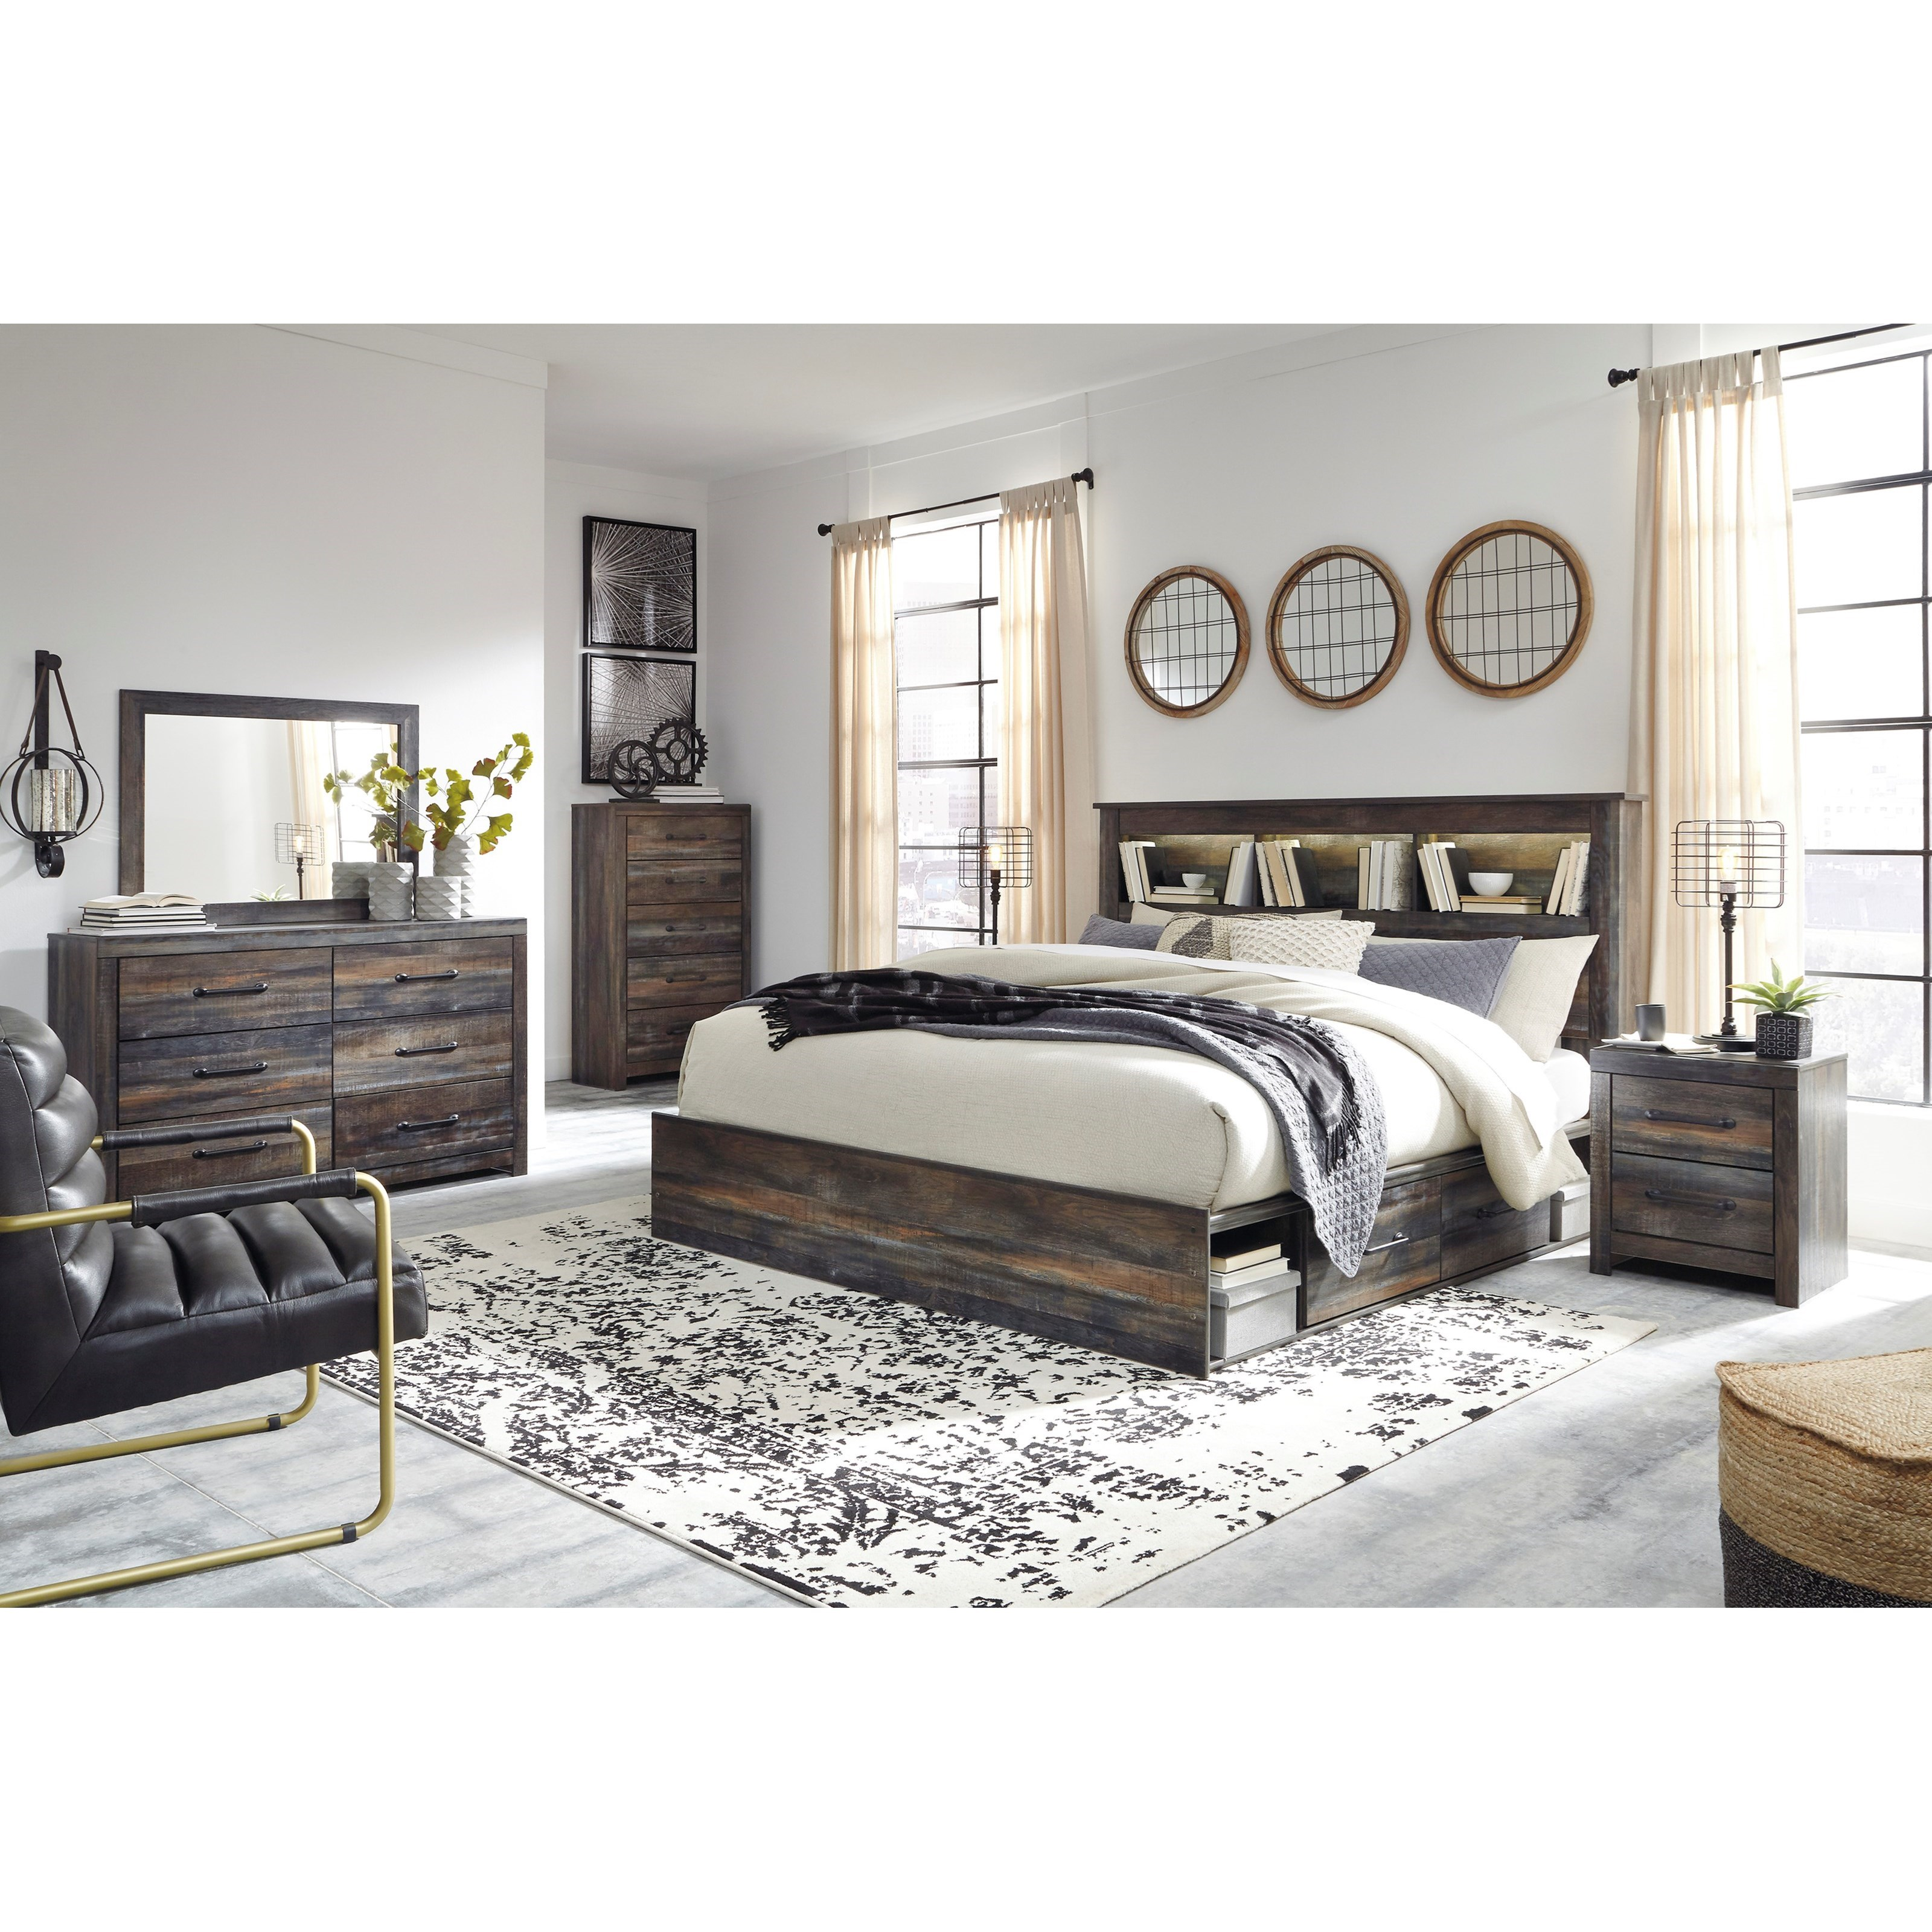 Drystan King Bedroom Group by Signature Design by Ashley at Furniture Barn